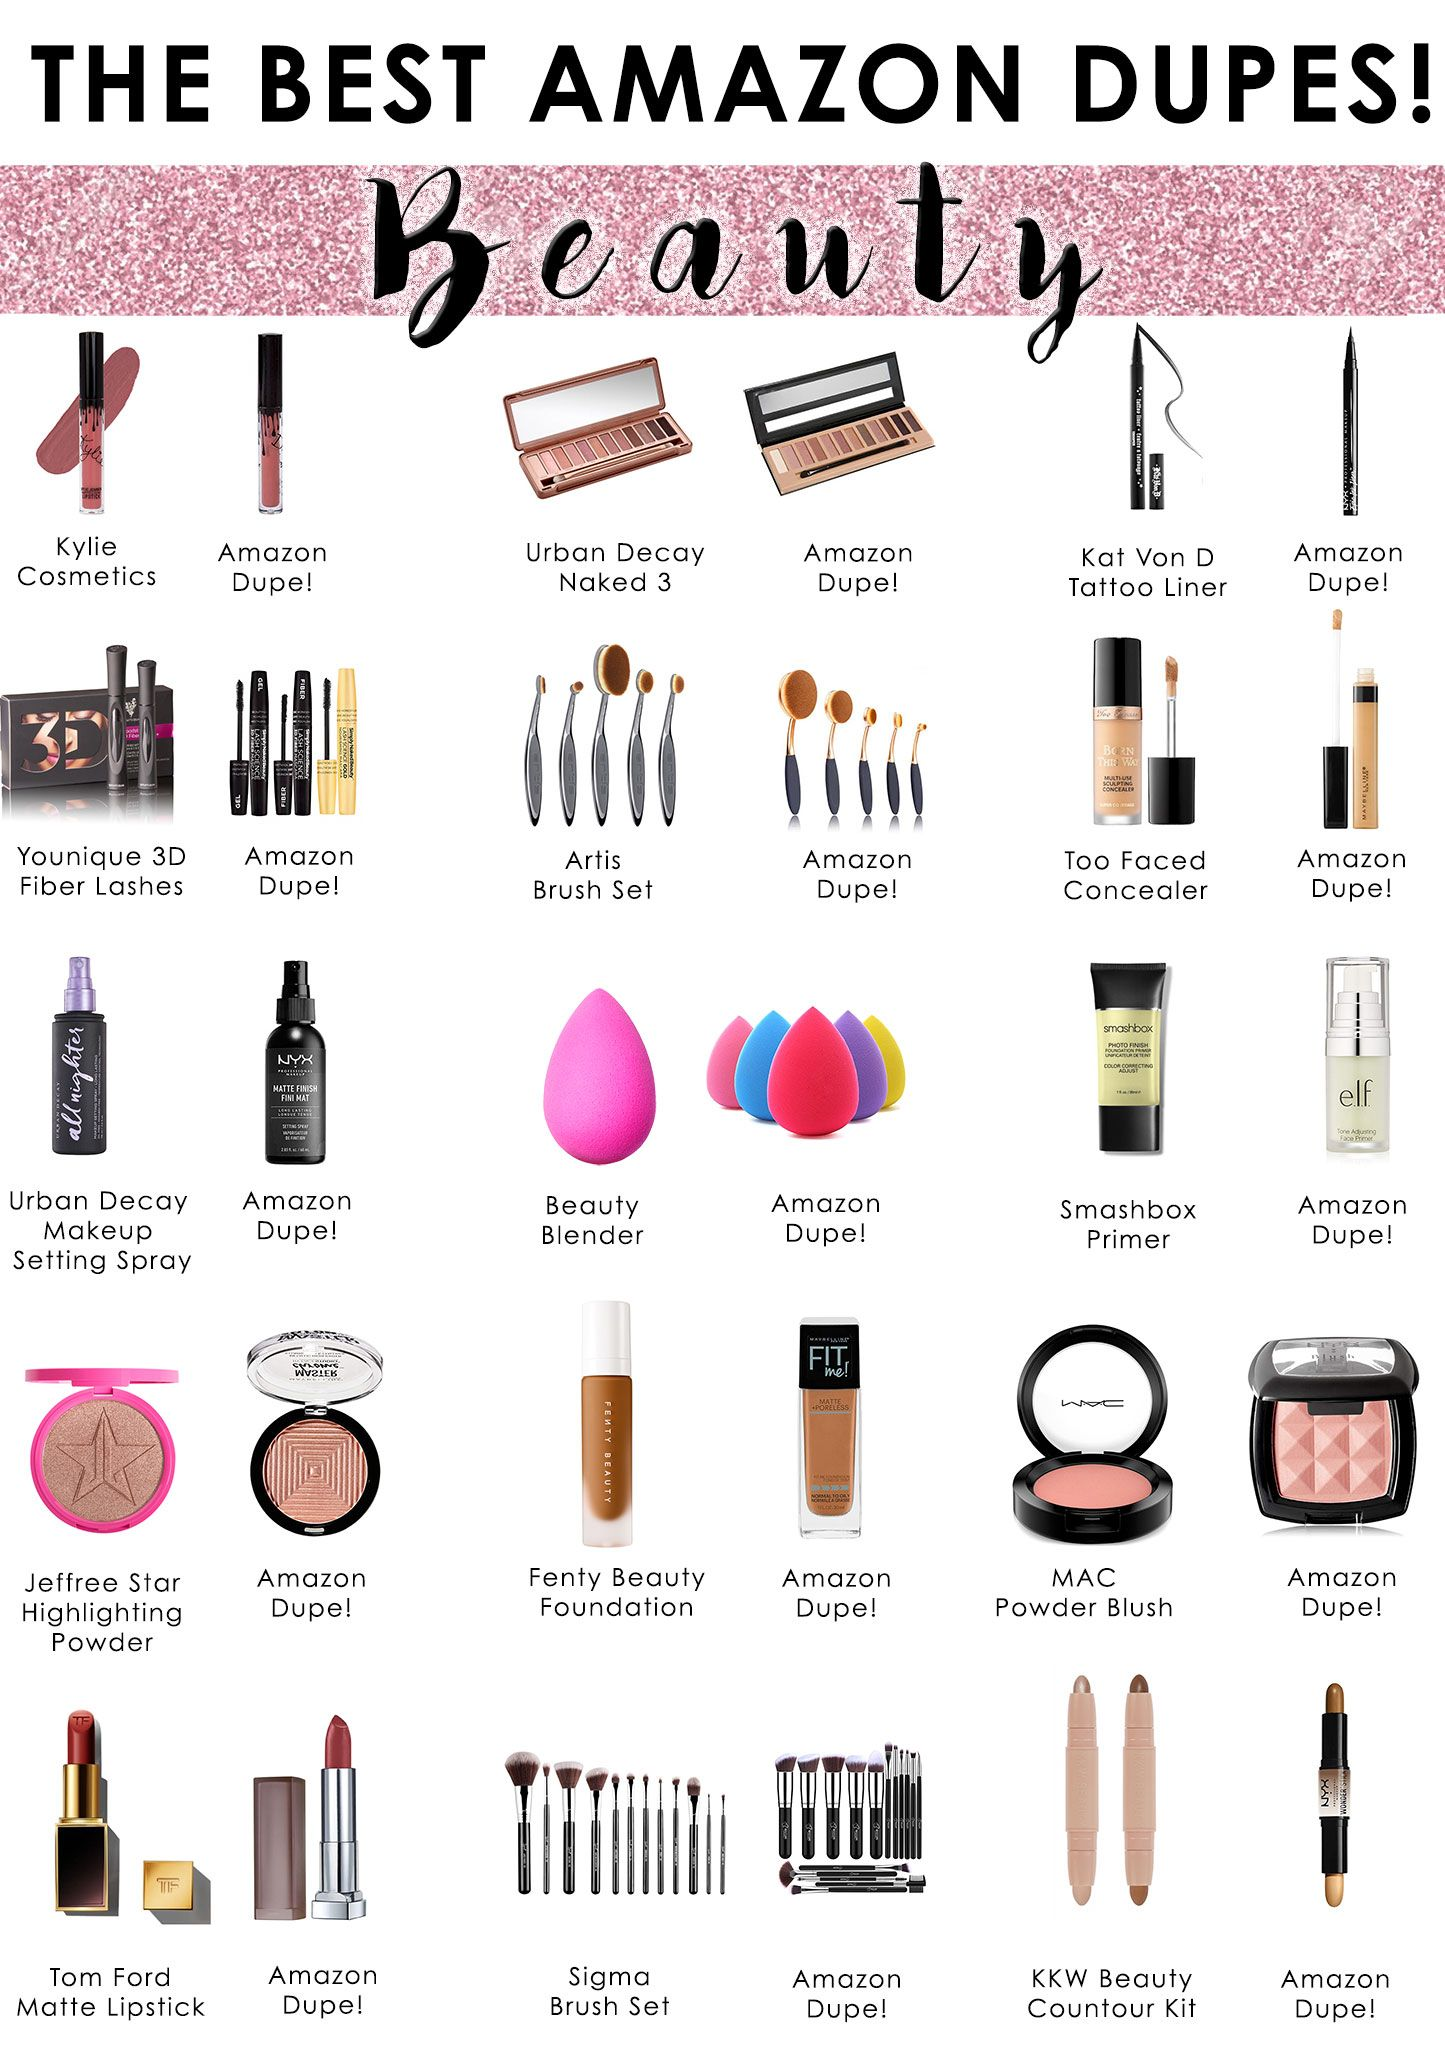 The Best Amazon Dupes Great Finds Makeup Dupes Lipstick Makeup Brushes Amazon Best Makeup Dupes